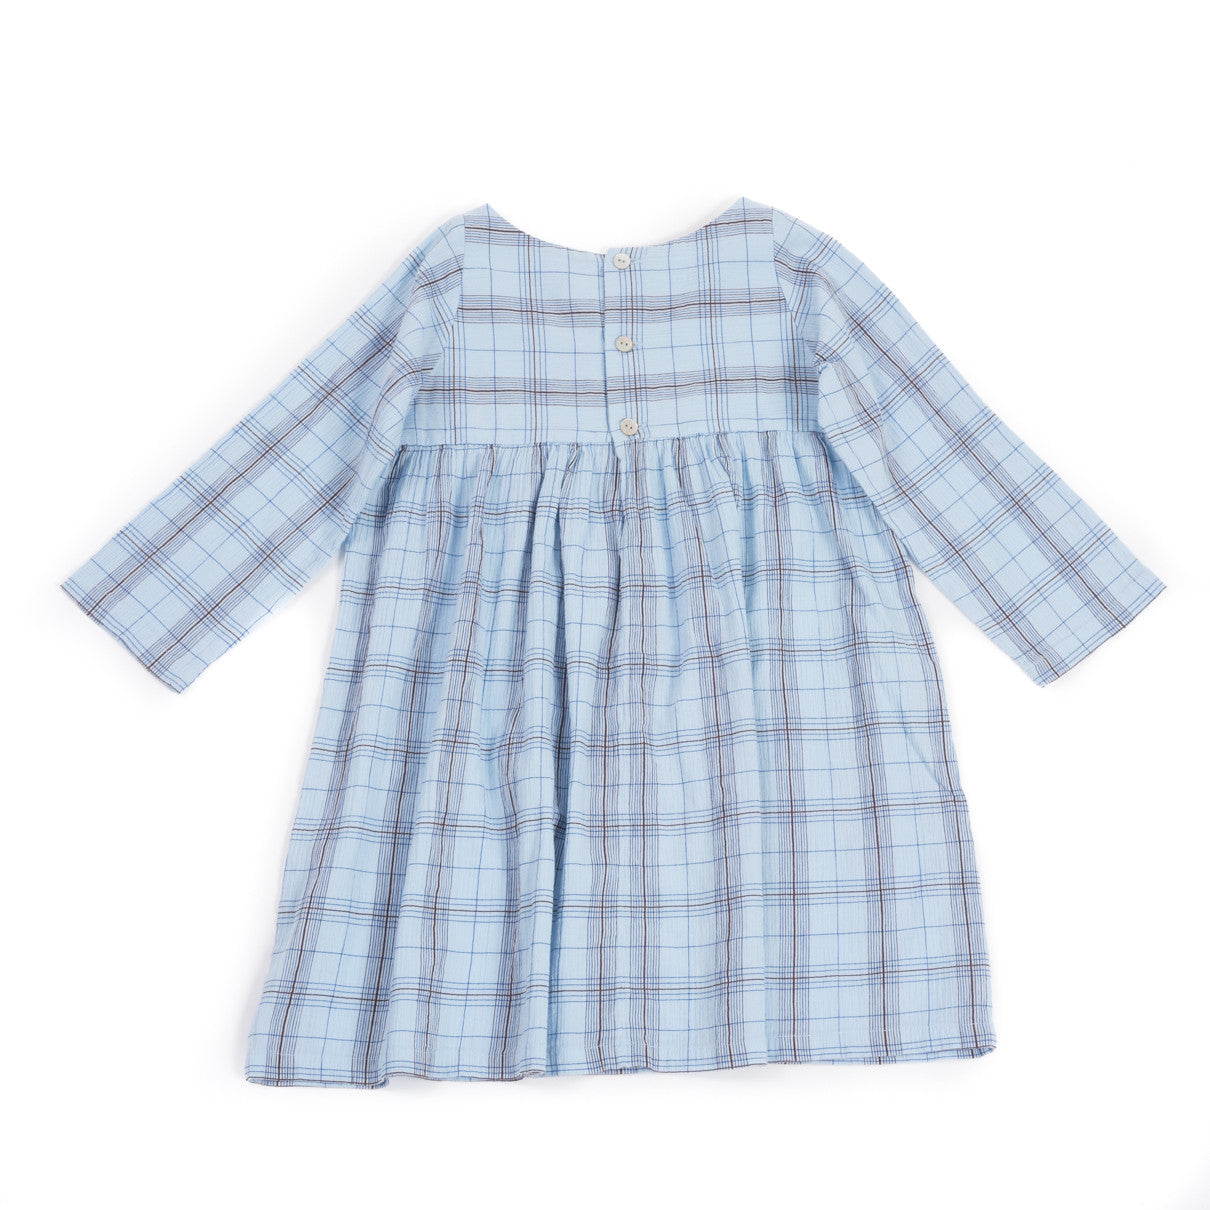 Bonton Blue Plaid Stitched Dress - Ladida